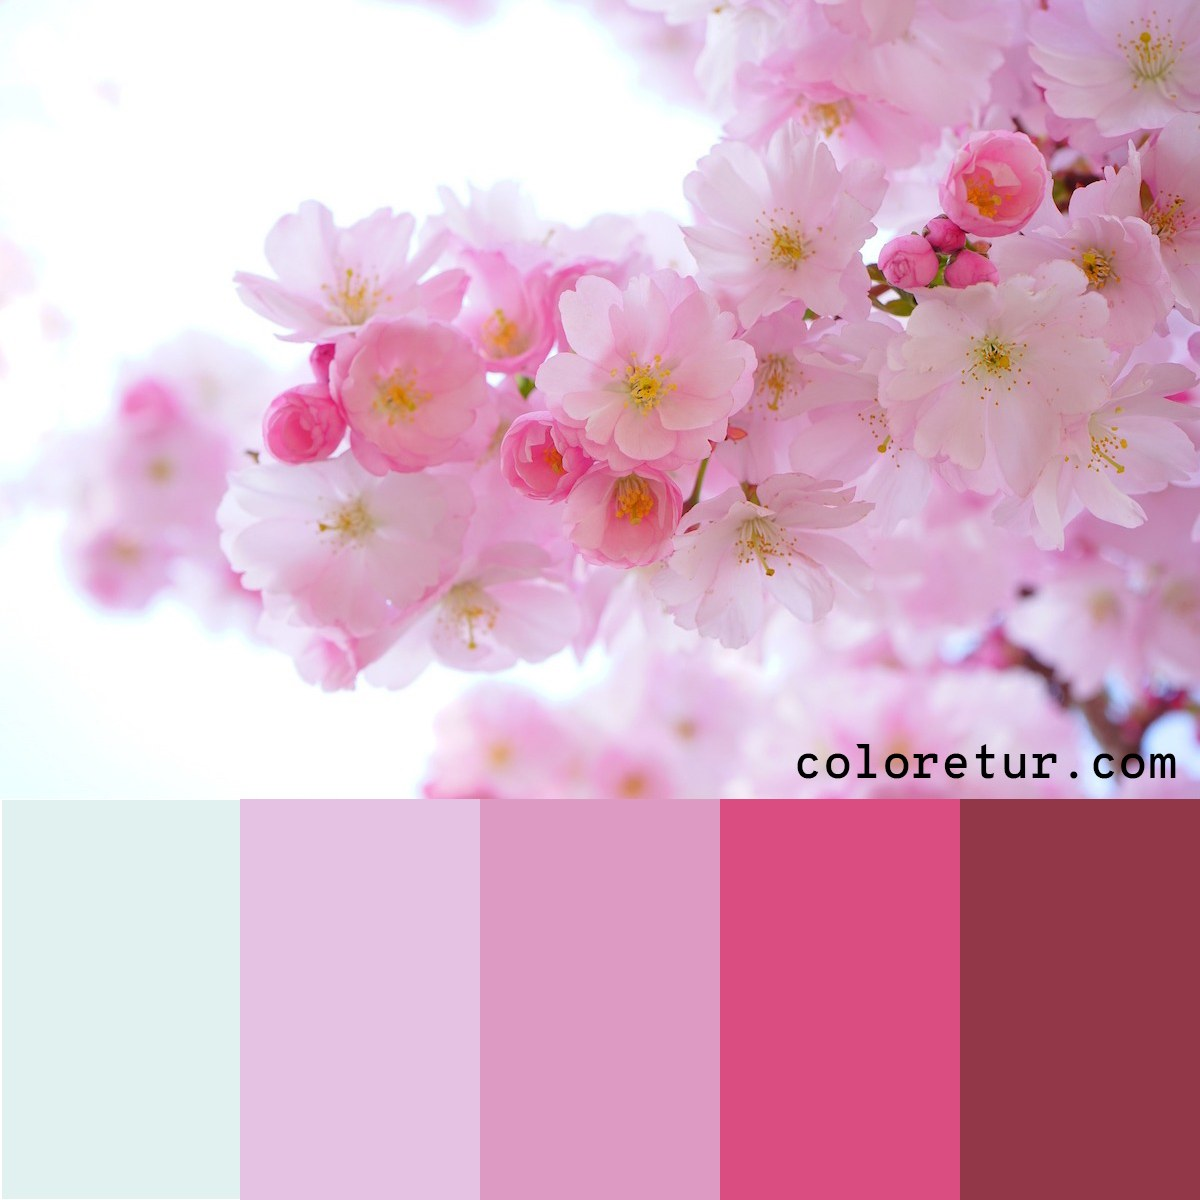 Pale pink cherry blossoms make a delicate color palette.